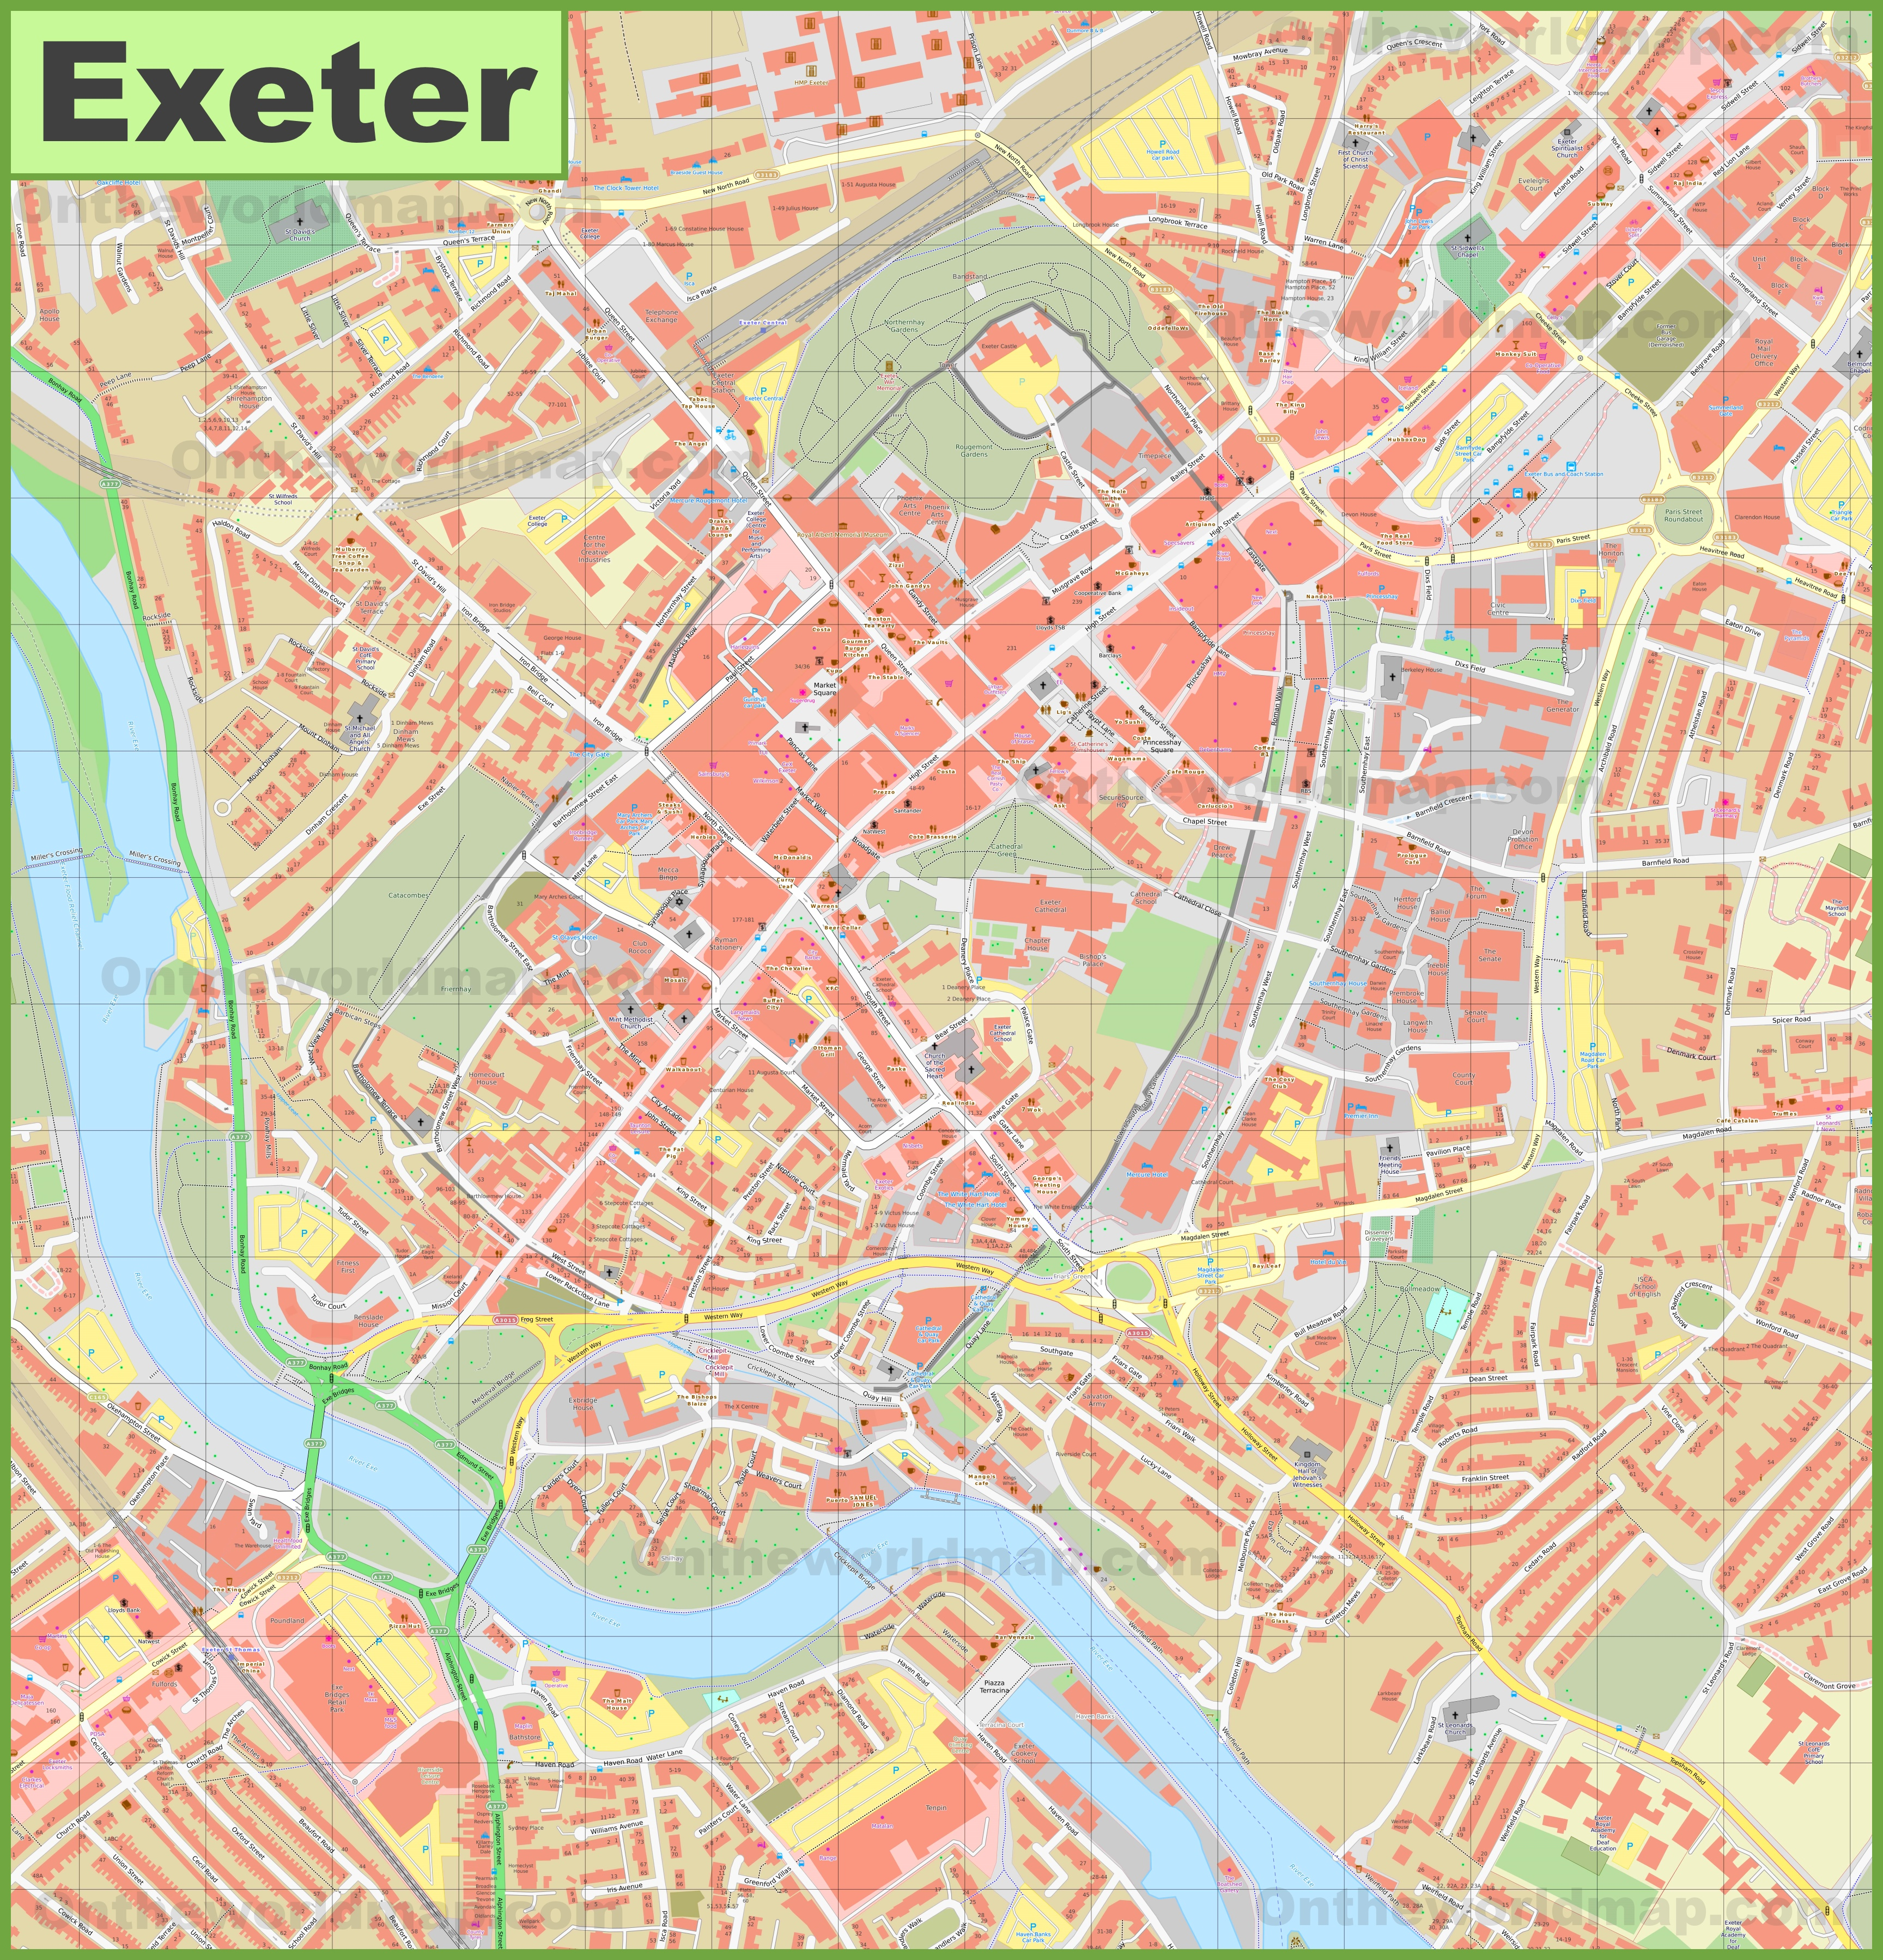 Map Of Exeter Exeter city center map Map Of Exeter